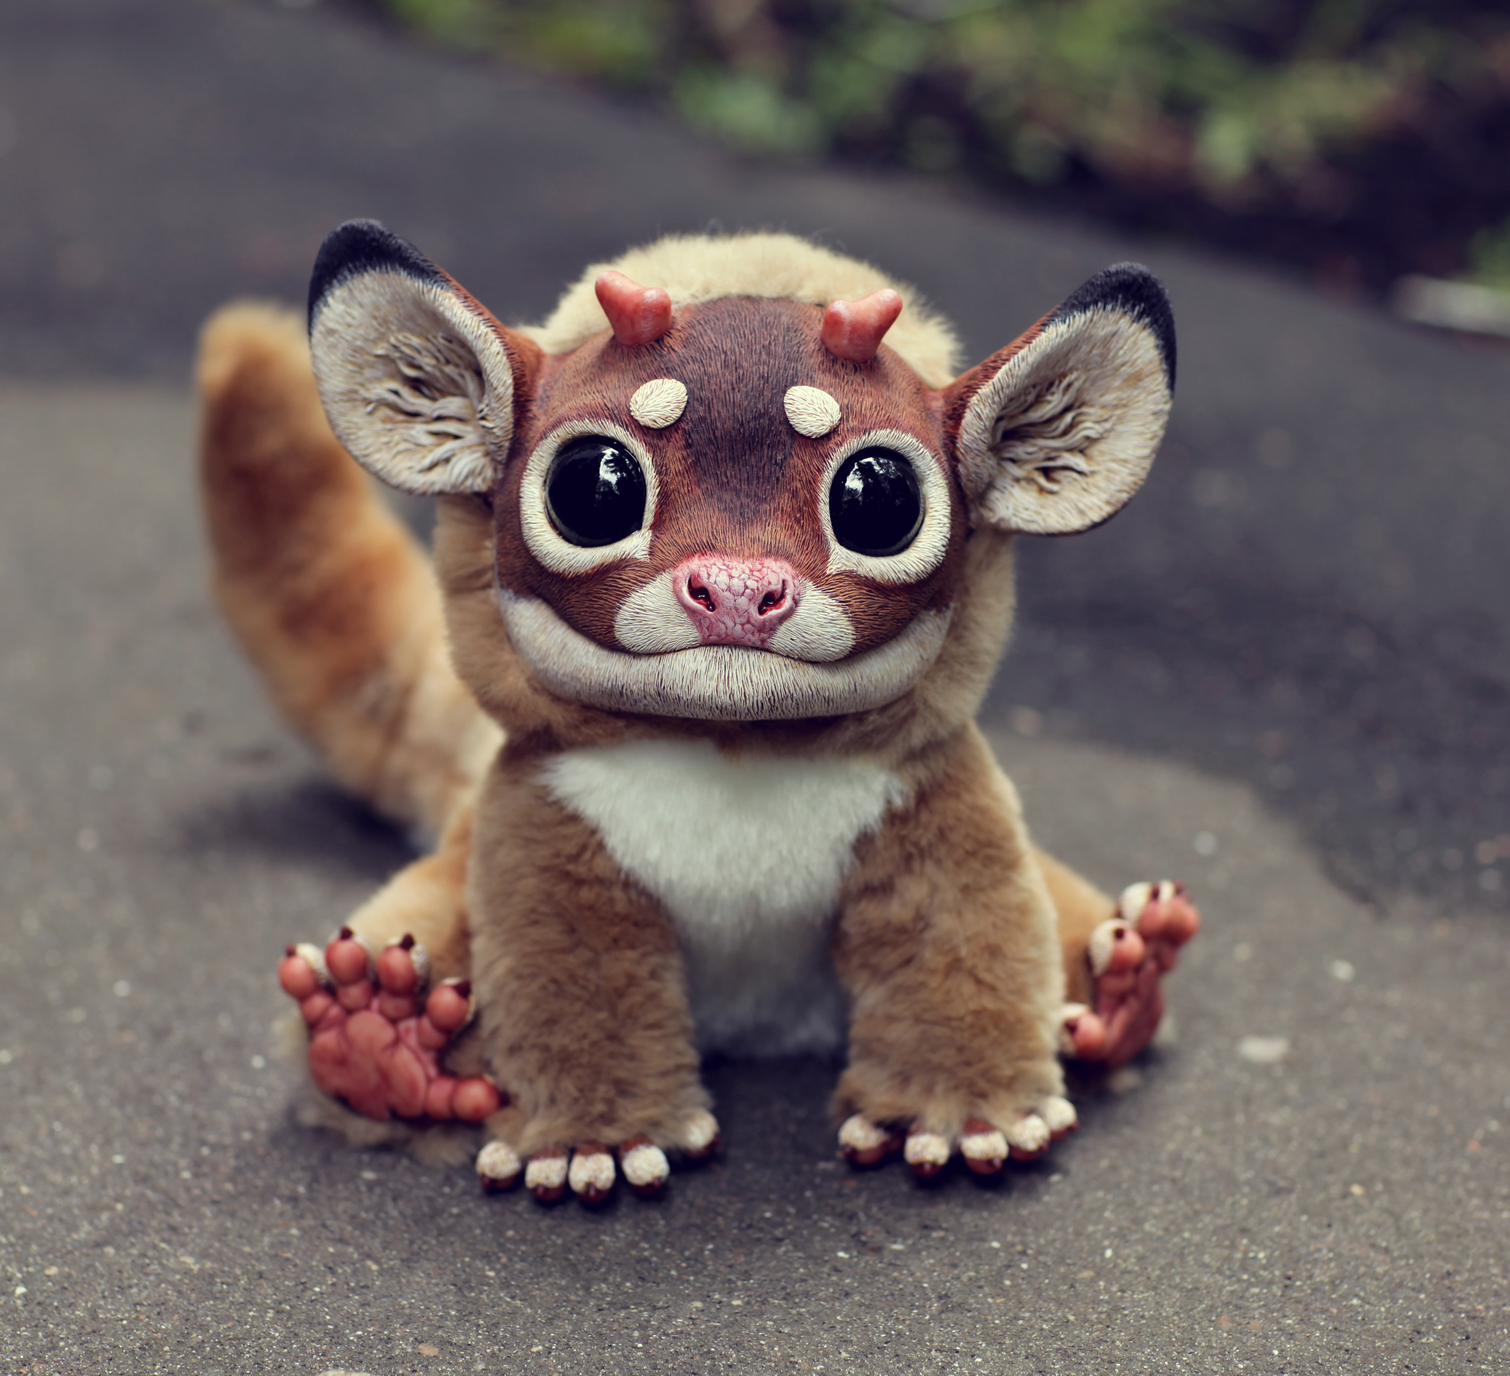 Not so long ago, photographs of frighteningly realistic toys of mythical beasts were published on various foreign websites. A bit terrifying, but cute and amusing, images riveted the media's attention.